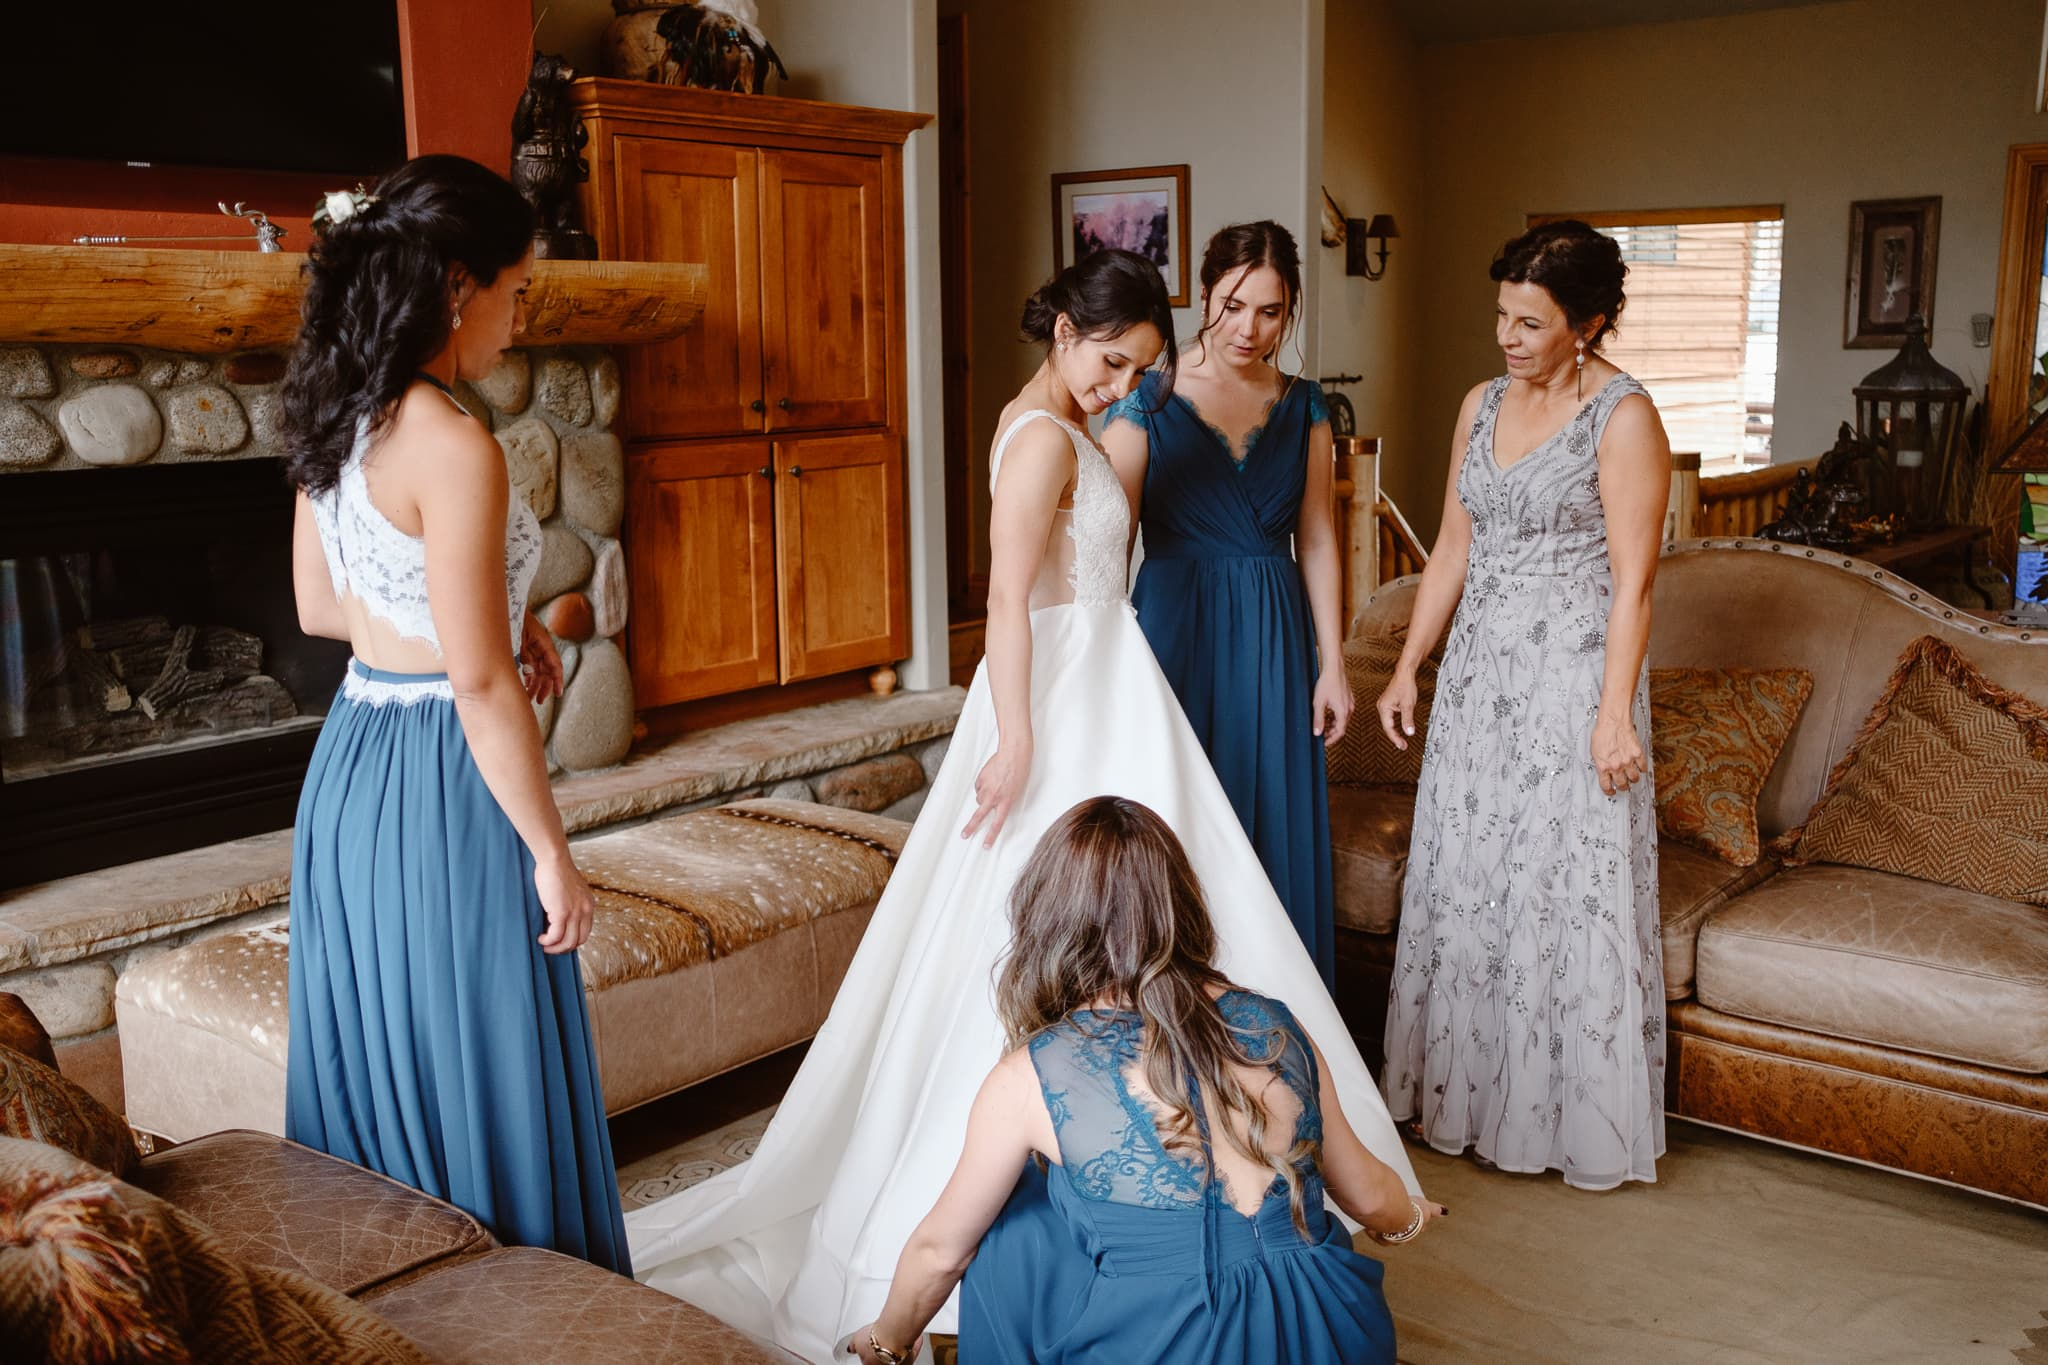 Bride with bridesmaids and her mom, putting wedding dress on for her Breckenridge Nordic Center wedding